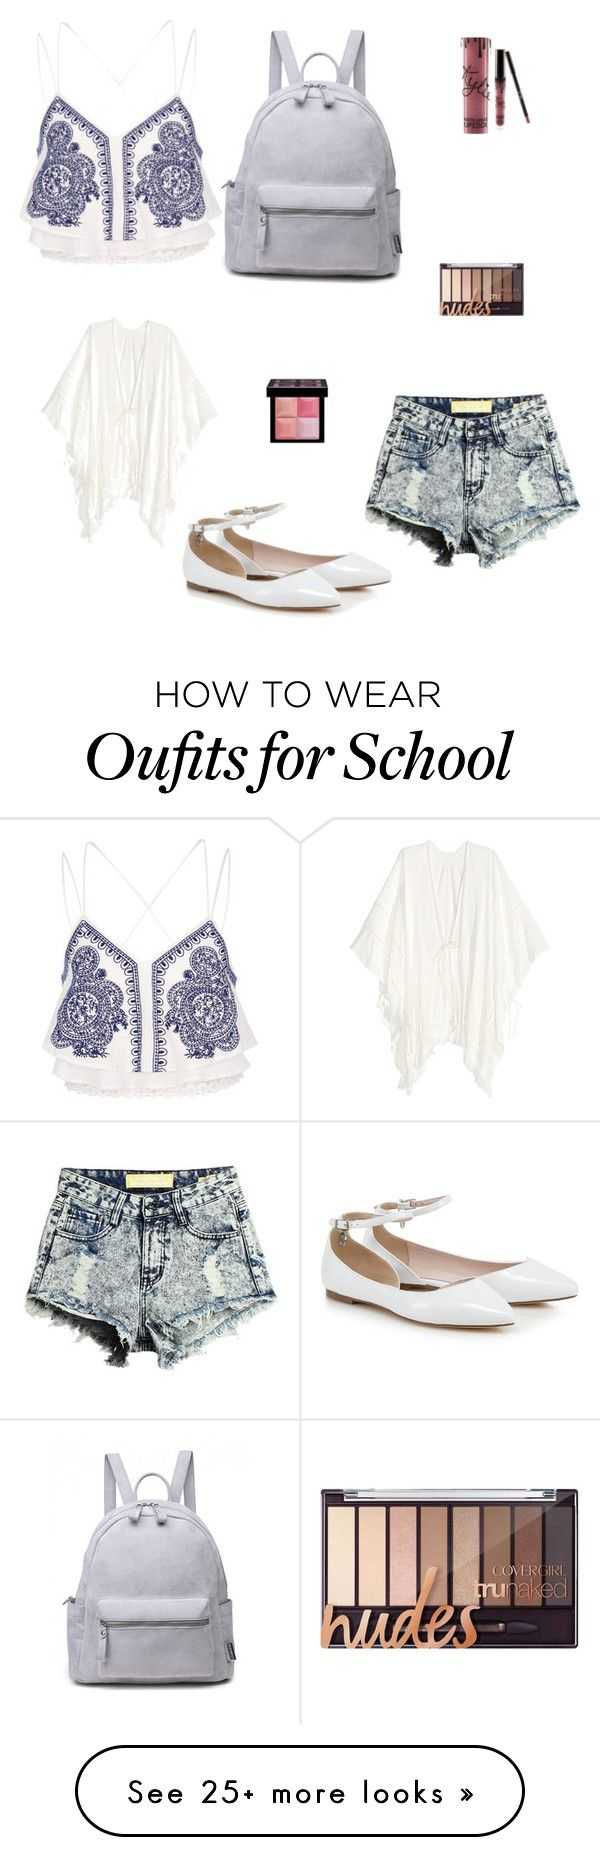 """""""The school outfit"""" by kaileygrimmett12 on Polyvore featuring River Island and Givenchy"""